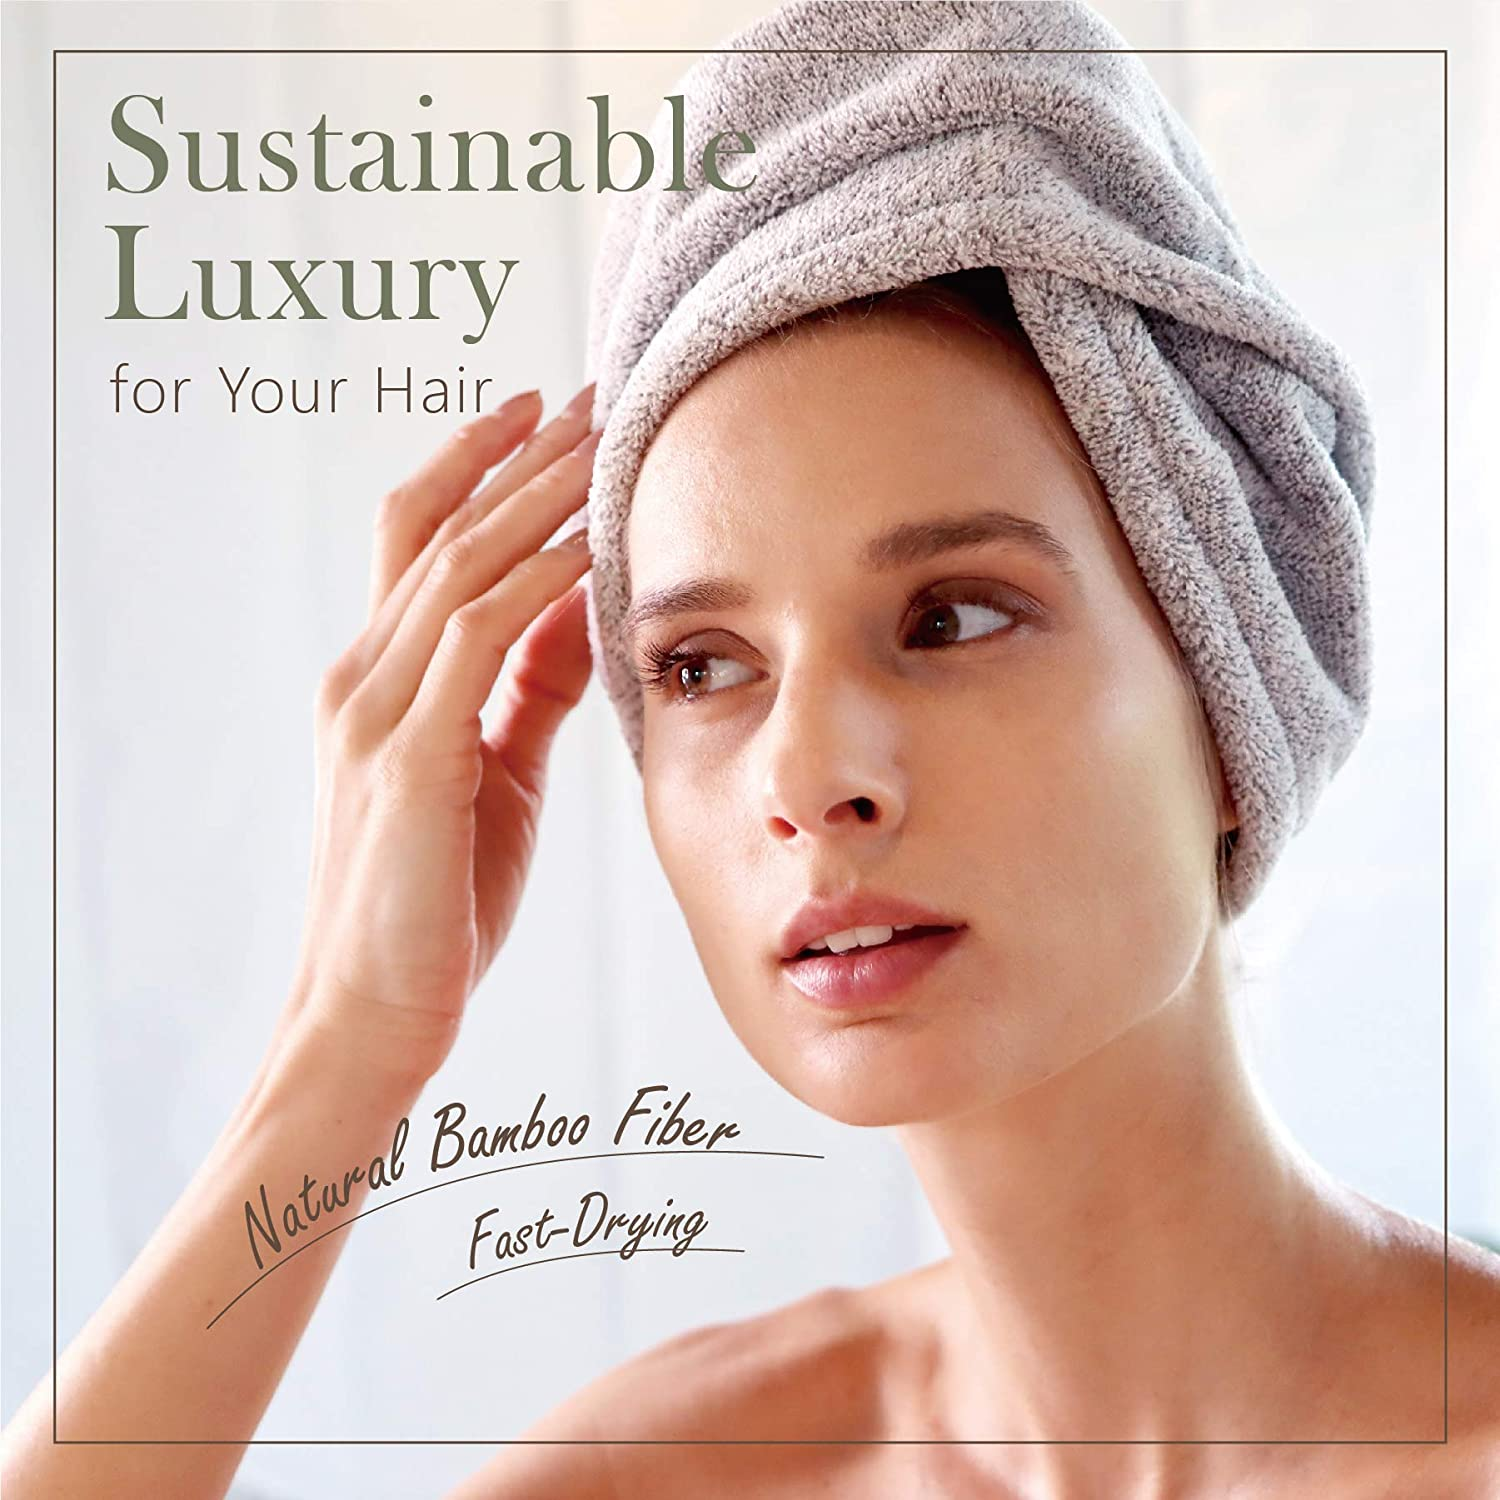 myHomeBody Hair Towel Wrap   Luxury Anti-Frizz Rapid-Dry Hair-Drying Turban   Ultra Soft and Quick Drying Absorbent Bamboo Fiber, with Coconut Shell Button : Beauty